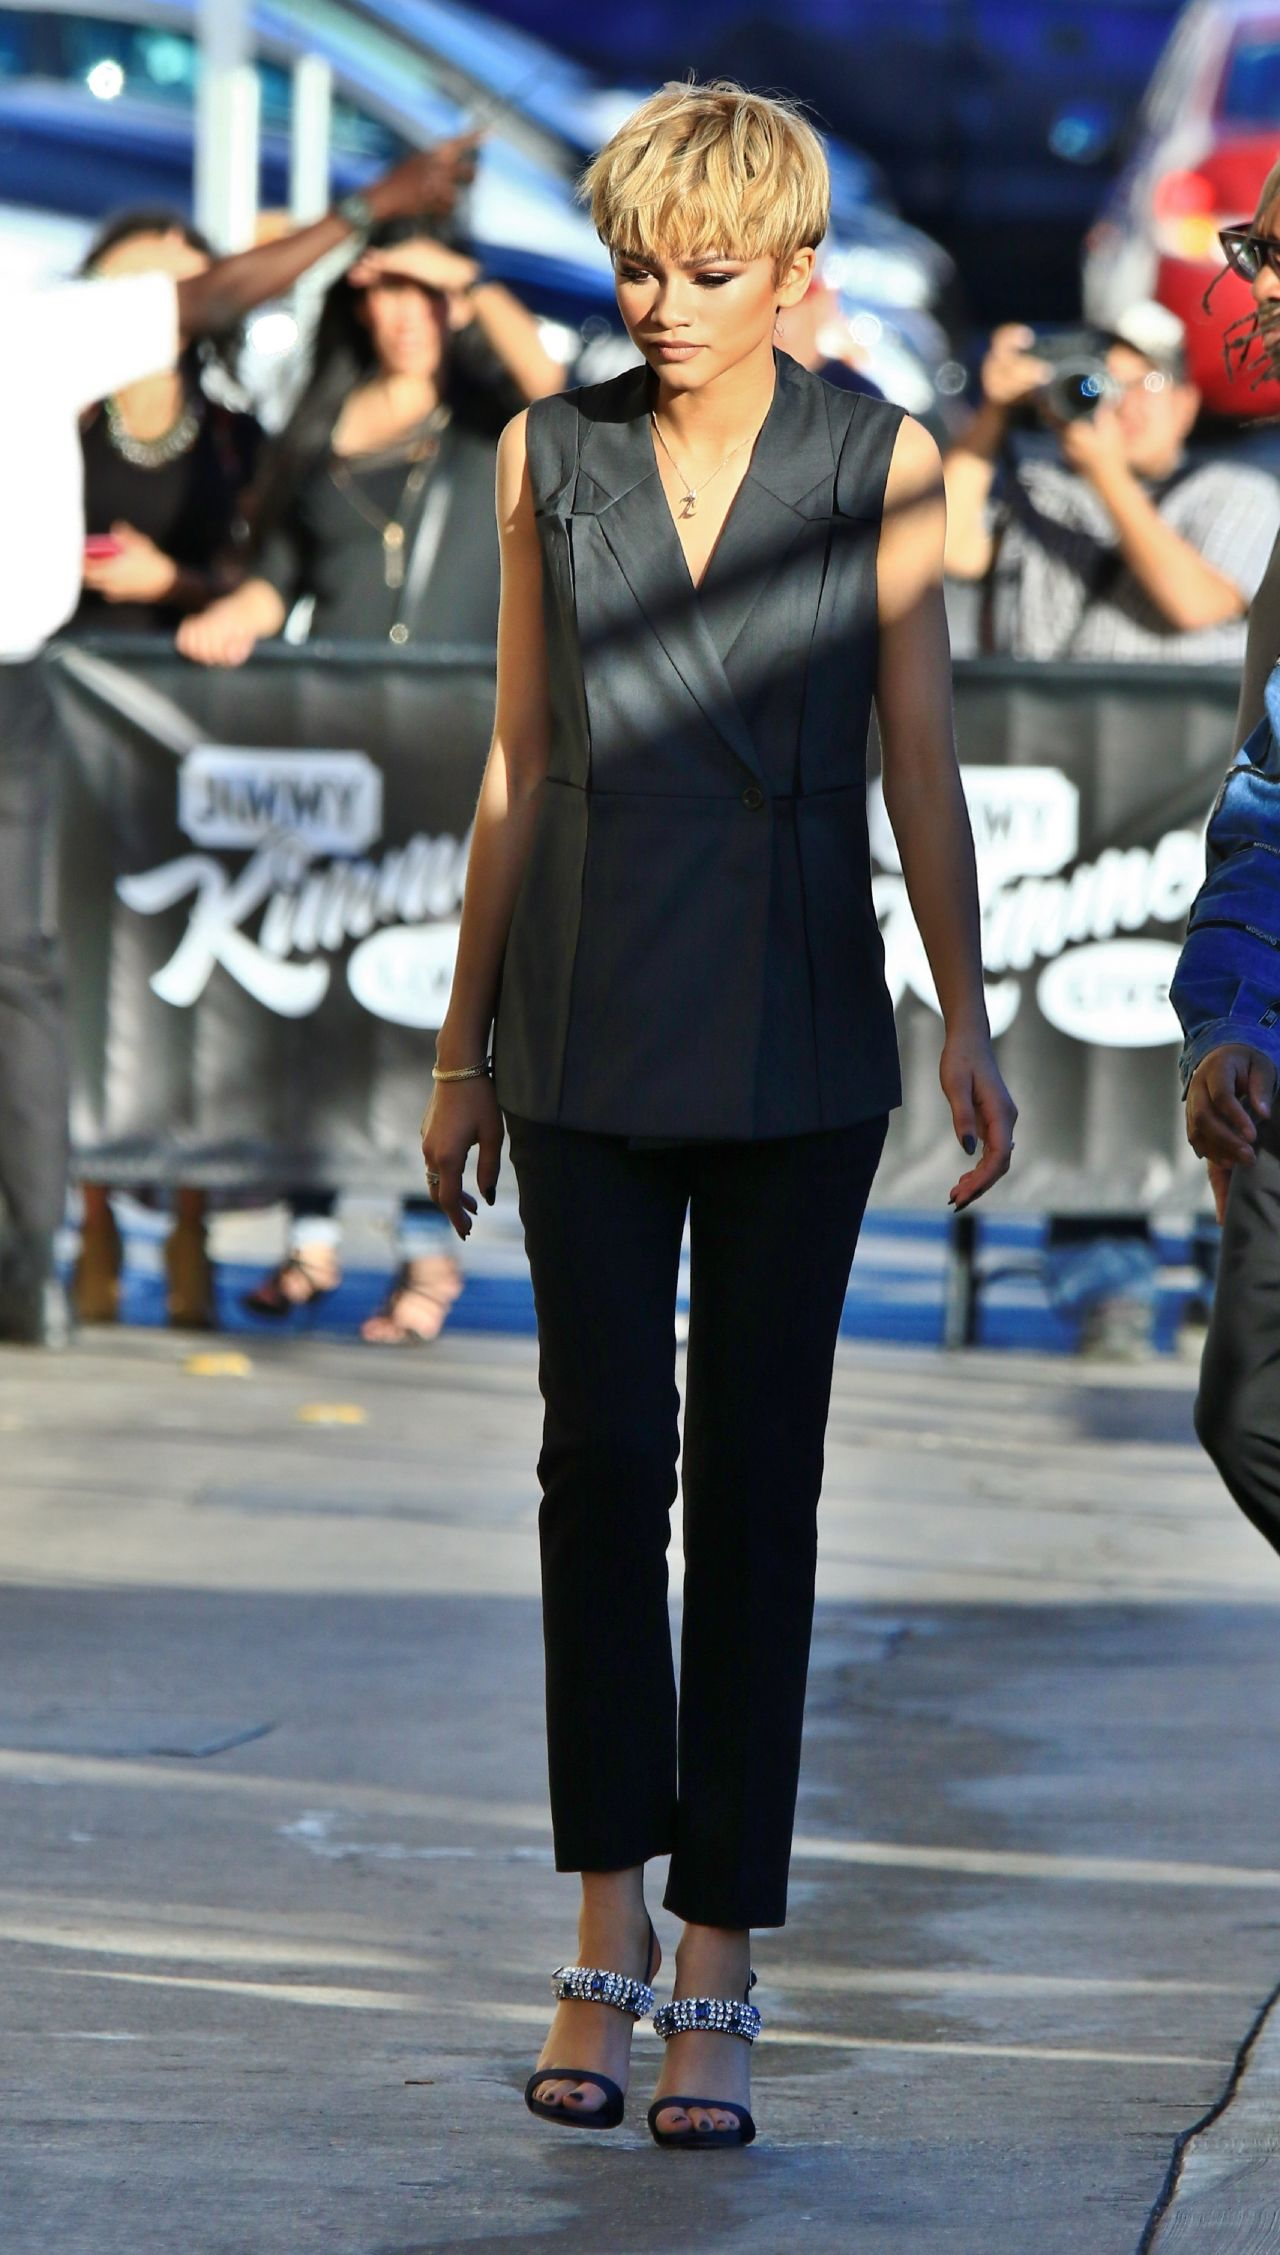 zendaya-coleman-arriving-to-appear-on-jimmy-kimmel-live-in-hollywood-2-10-2016-1-1